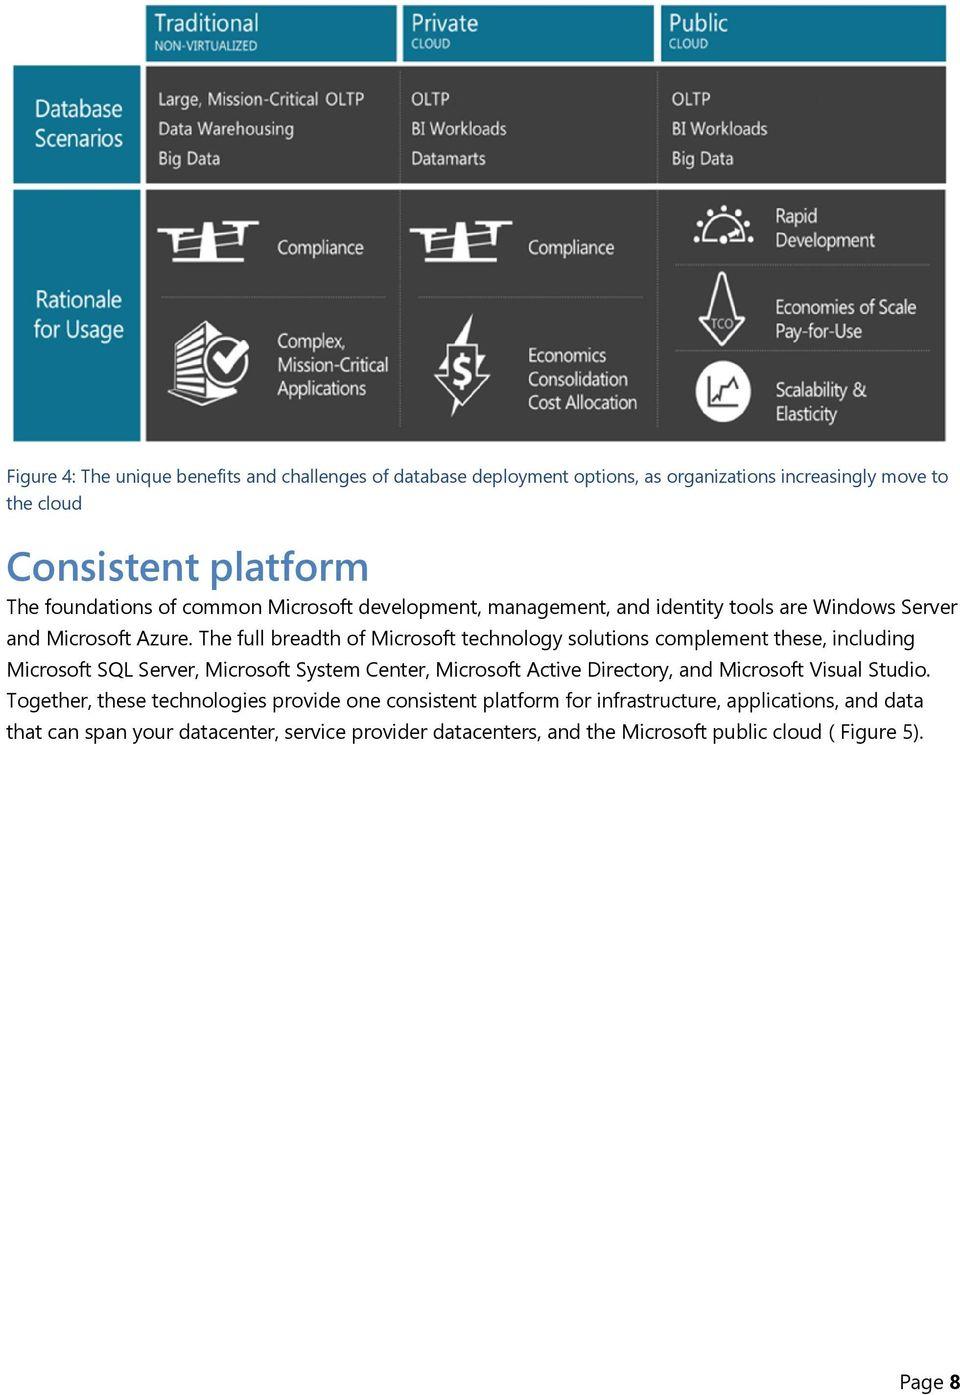 The full breadth of Microsoft technology solutions complement these, including Microsoft SQL Server, Microsoft System Center, Microsoft Active Directory, and